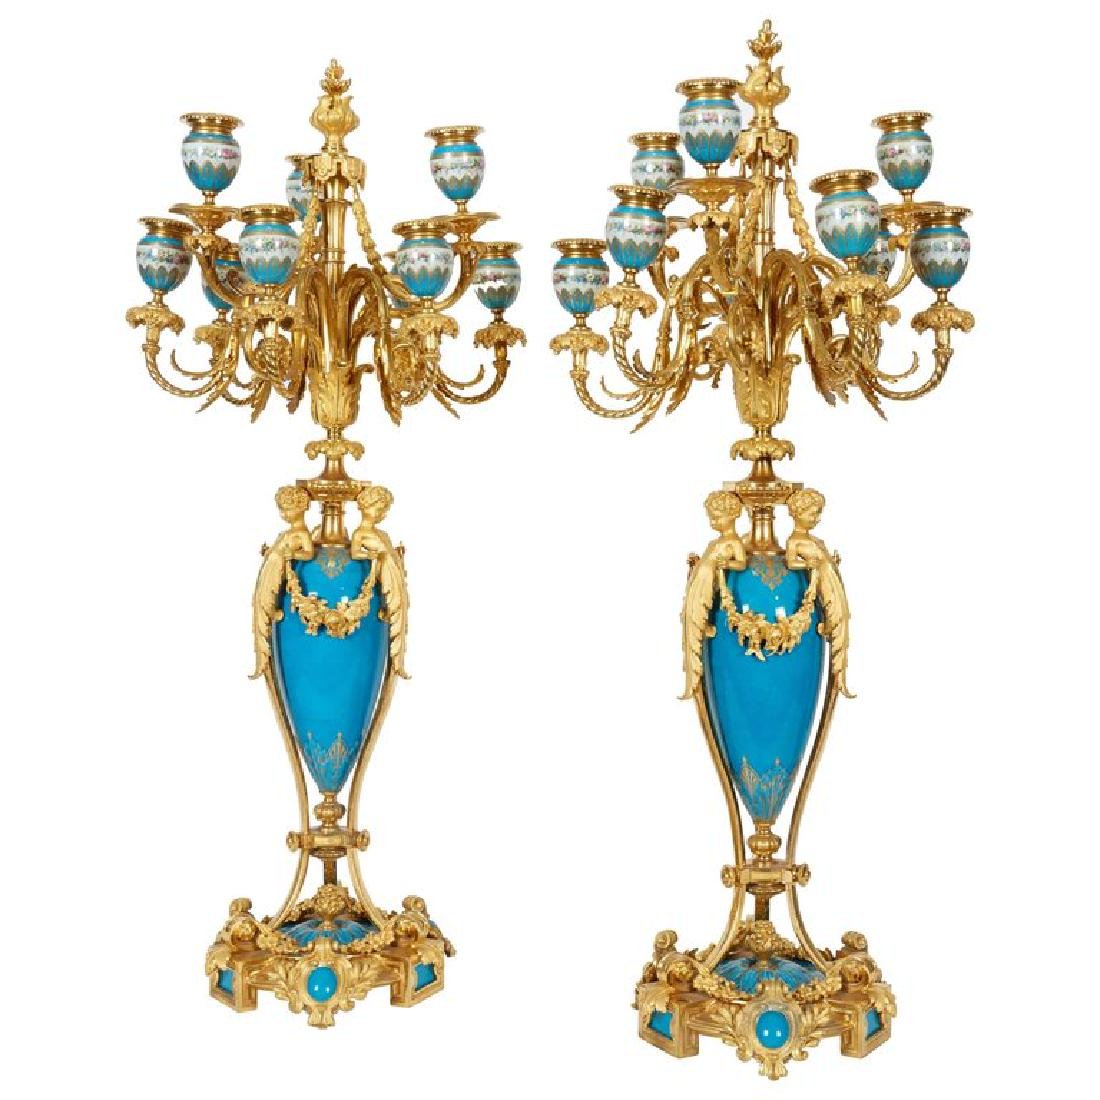 Exquisite Pair of French Ormolu and Turquoise Sevres